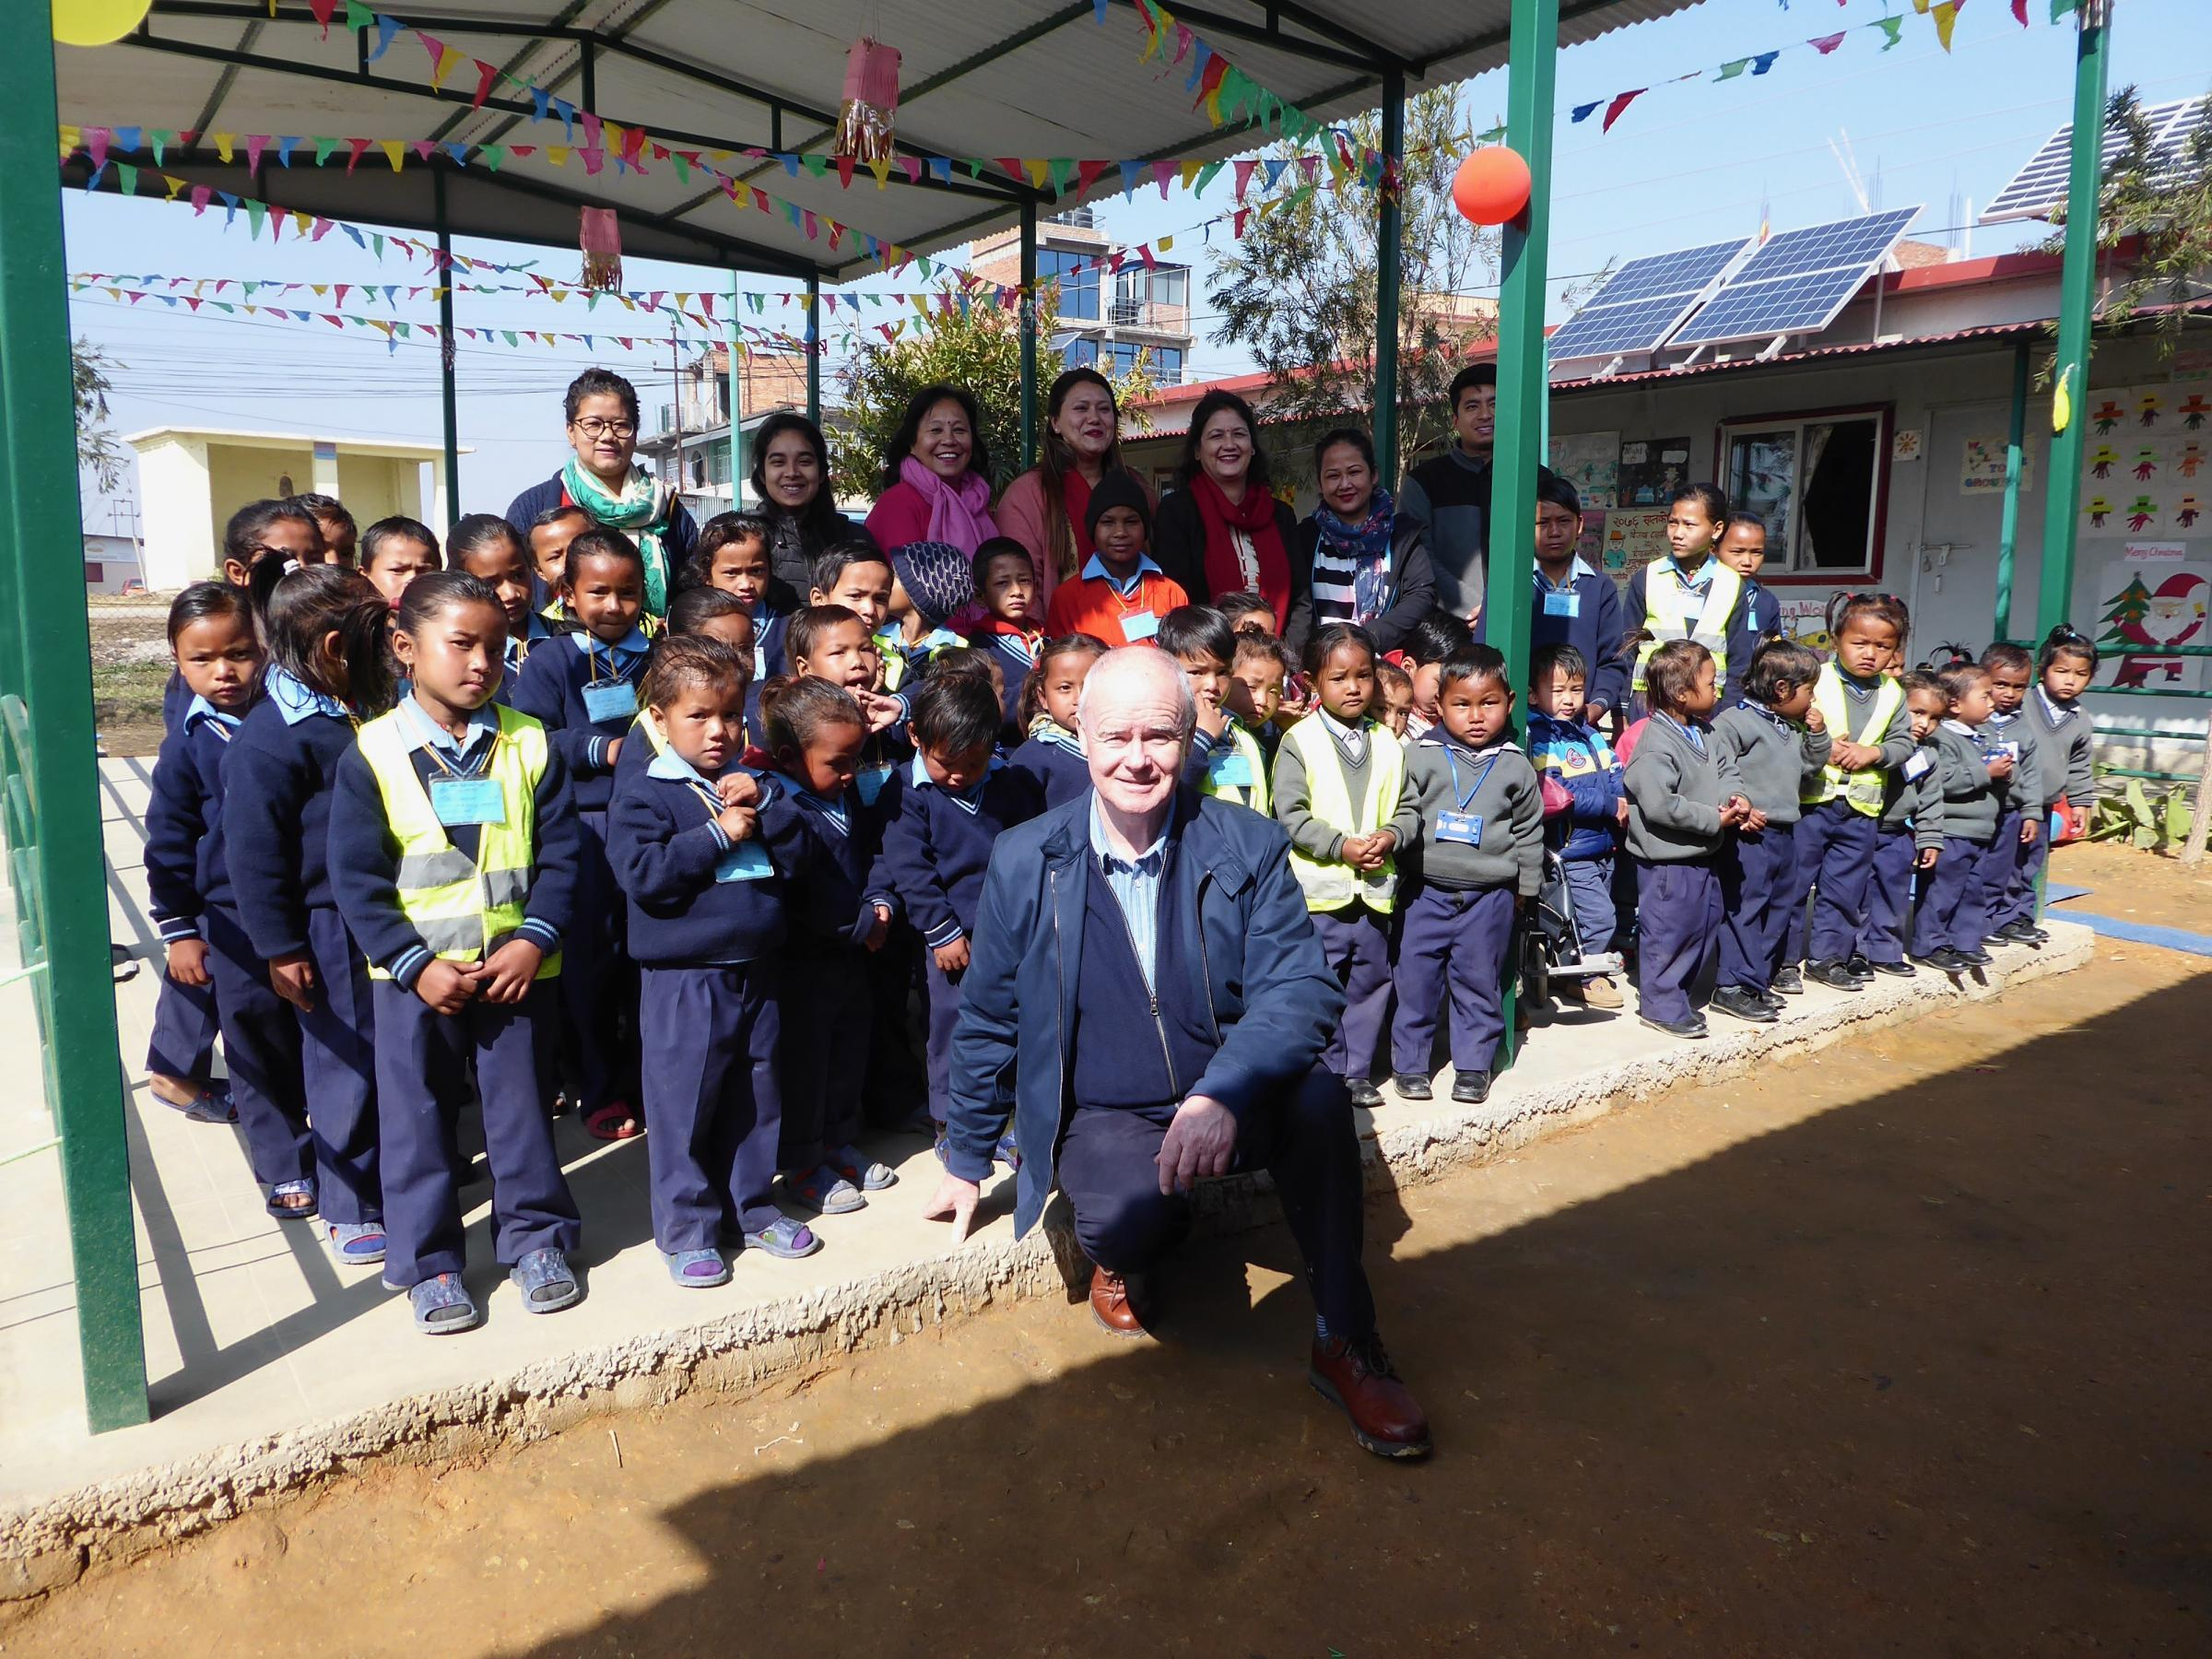 Wrexham man returns to Nepal to mark 20 years since founding a school